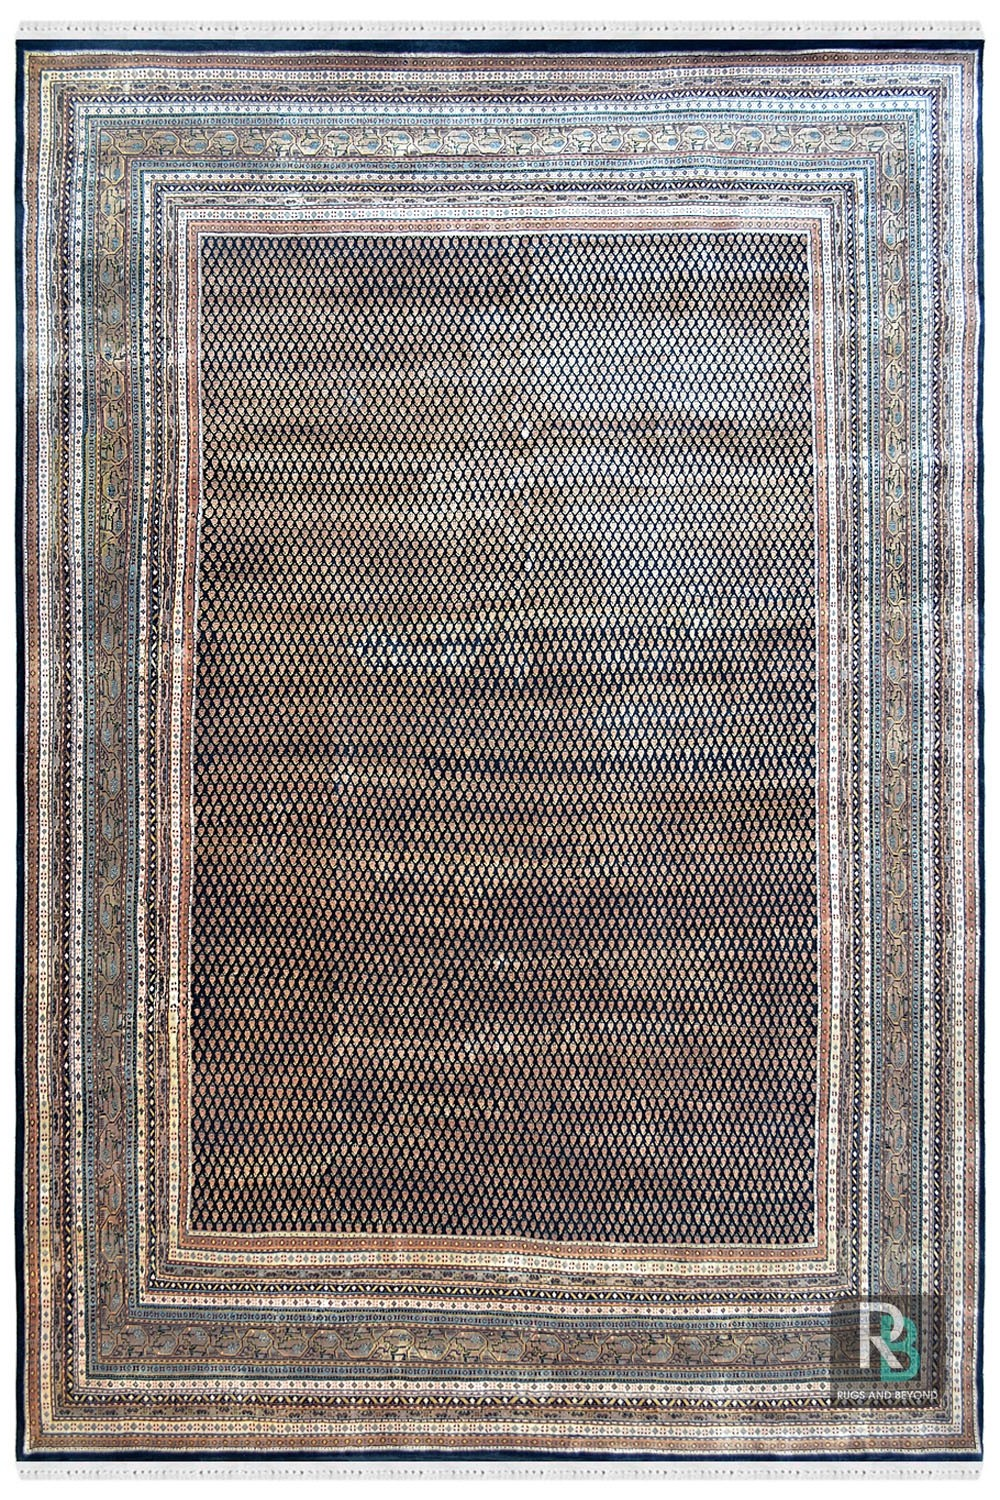 Buy Rugs Online and Snake Print pure wool and cotton handmade Wool area Rug and carpet